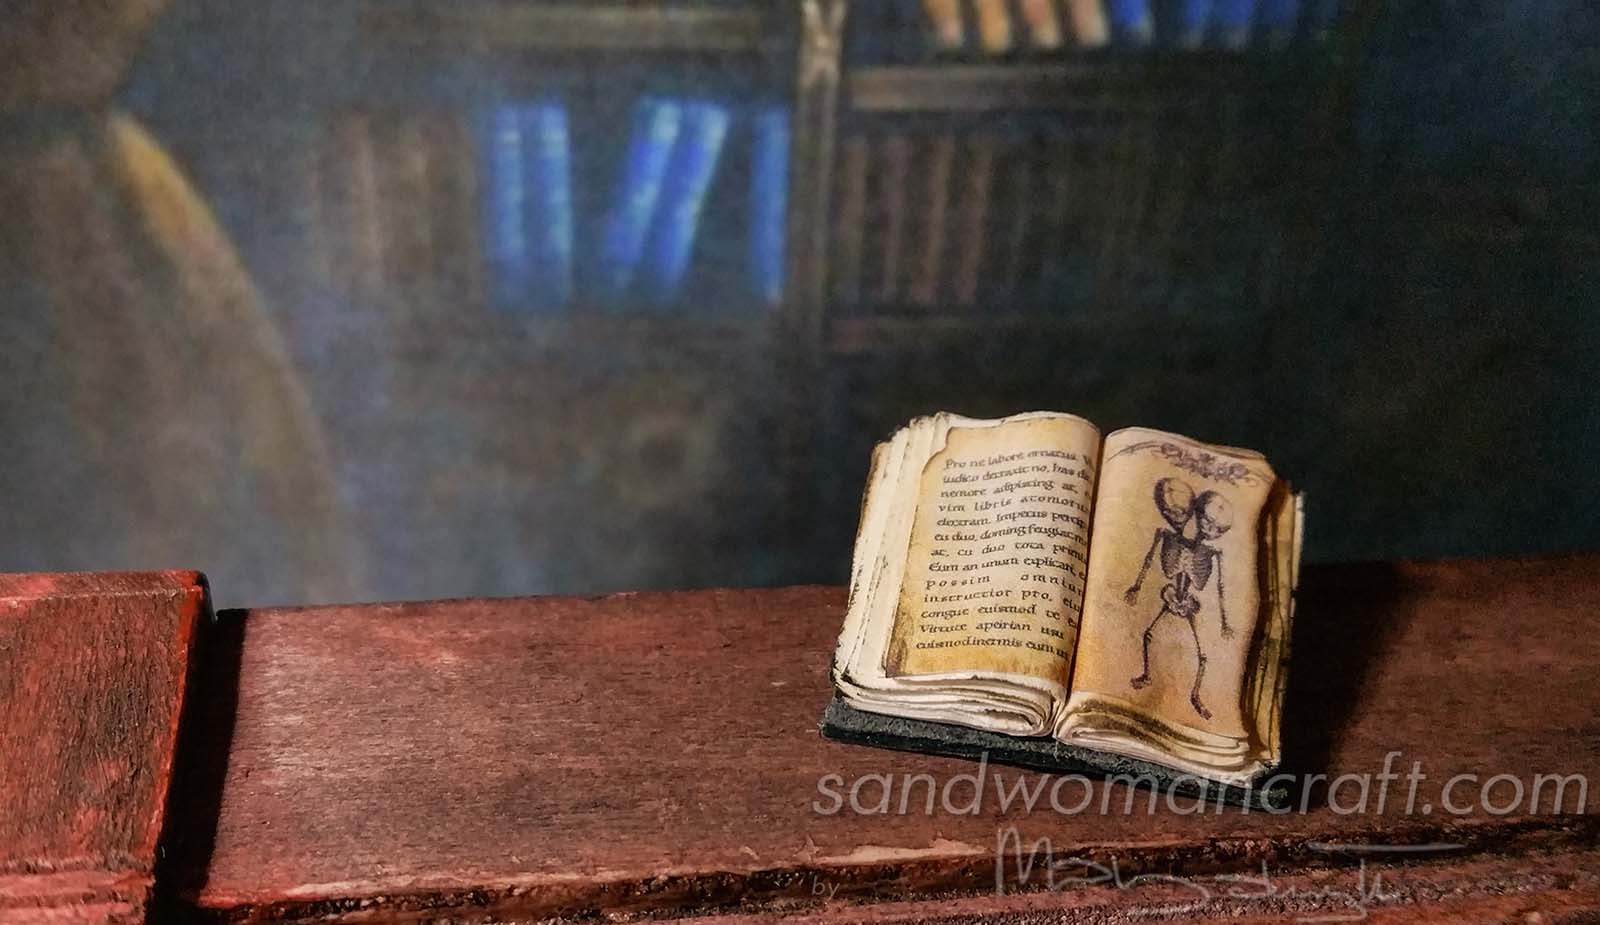 Miniature tiny open book. Creature with two heads